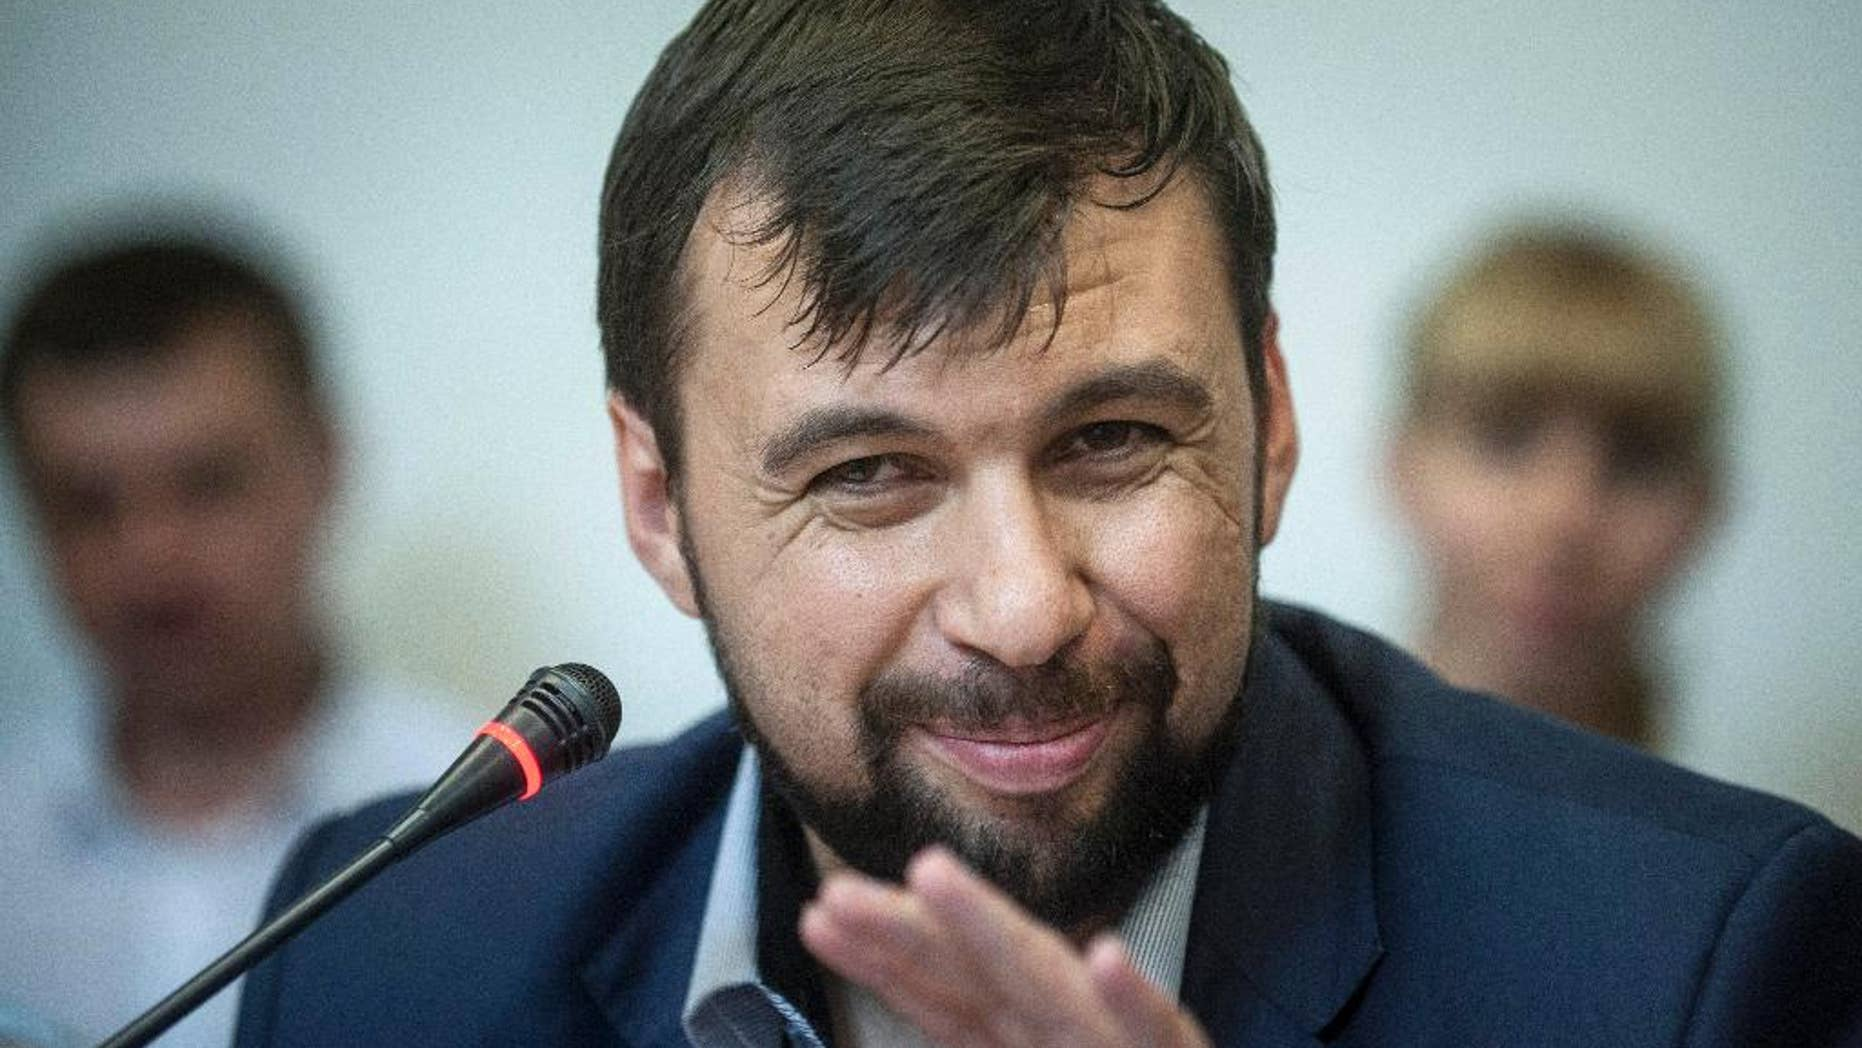 """FILE - In this Wednesday May 14, 2014 file photo Denis Pushilin, leader of the insurgency that has declared an independent """"people's republik"""" in the Donetsk region, speaks at a news conference in eastern Ukraine city of Donetsk.  The Donetsk People's Republic is starting to smell. Rotting garbage is piling up in the hallways of the government office building seized by separatists in eastern Ukraine. Telephones ripped from the walls are piled atop broken furniture and mounds of old files. The stench of sweat and stale cigarettes is everywhere.  The guards, slouching men with pistols shoved in their pockets or flapping loosely in holsters, look increasingly bored.  (AP Photo/Evgeniy Maloletka, File)"""